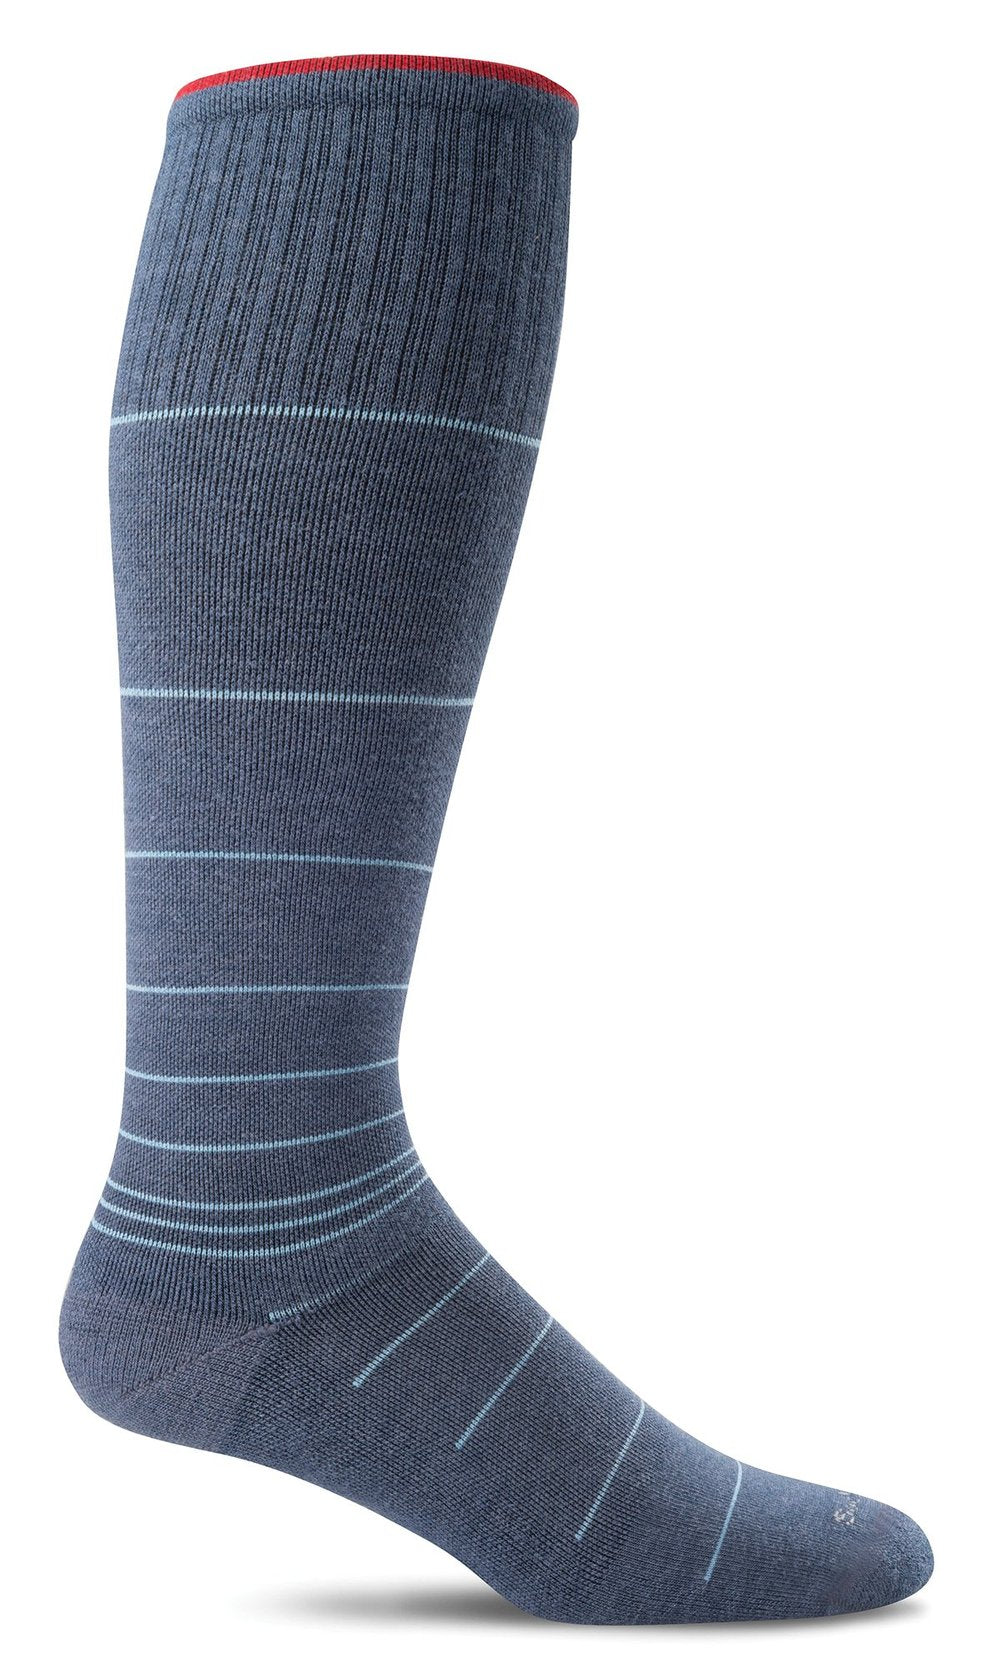 Men's Circulator Graduated Compression Knee High Socks